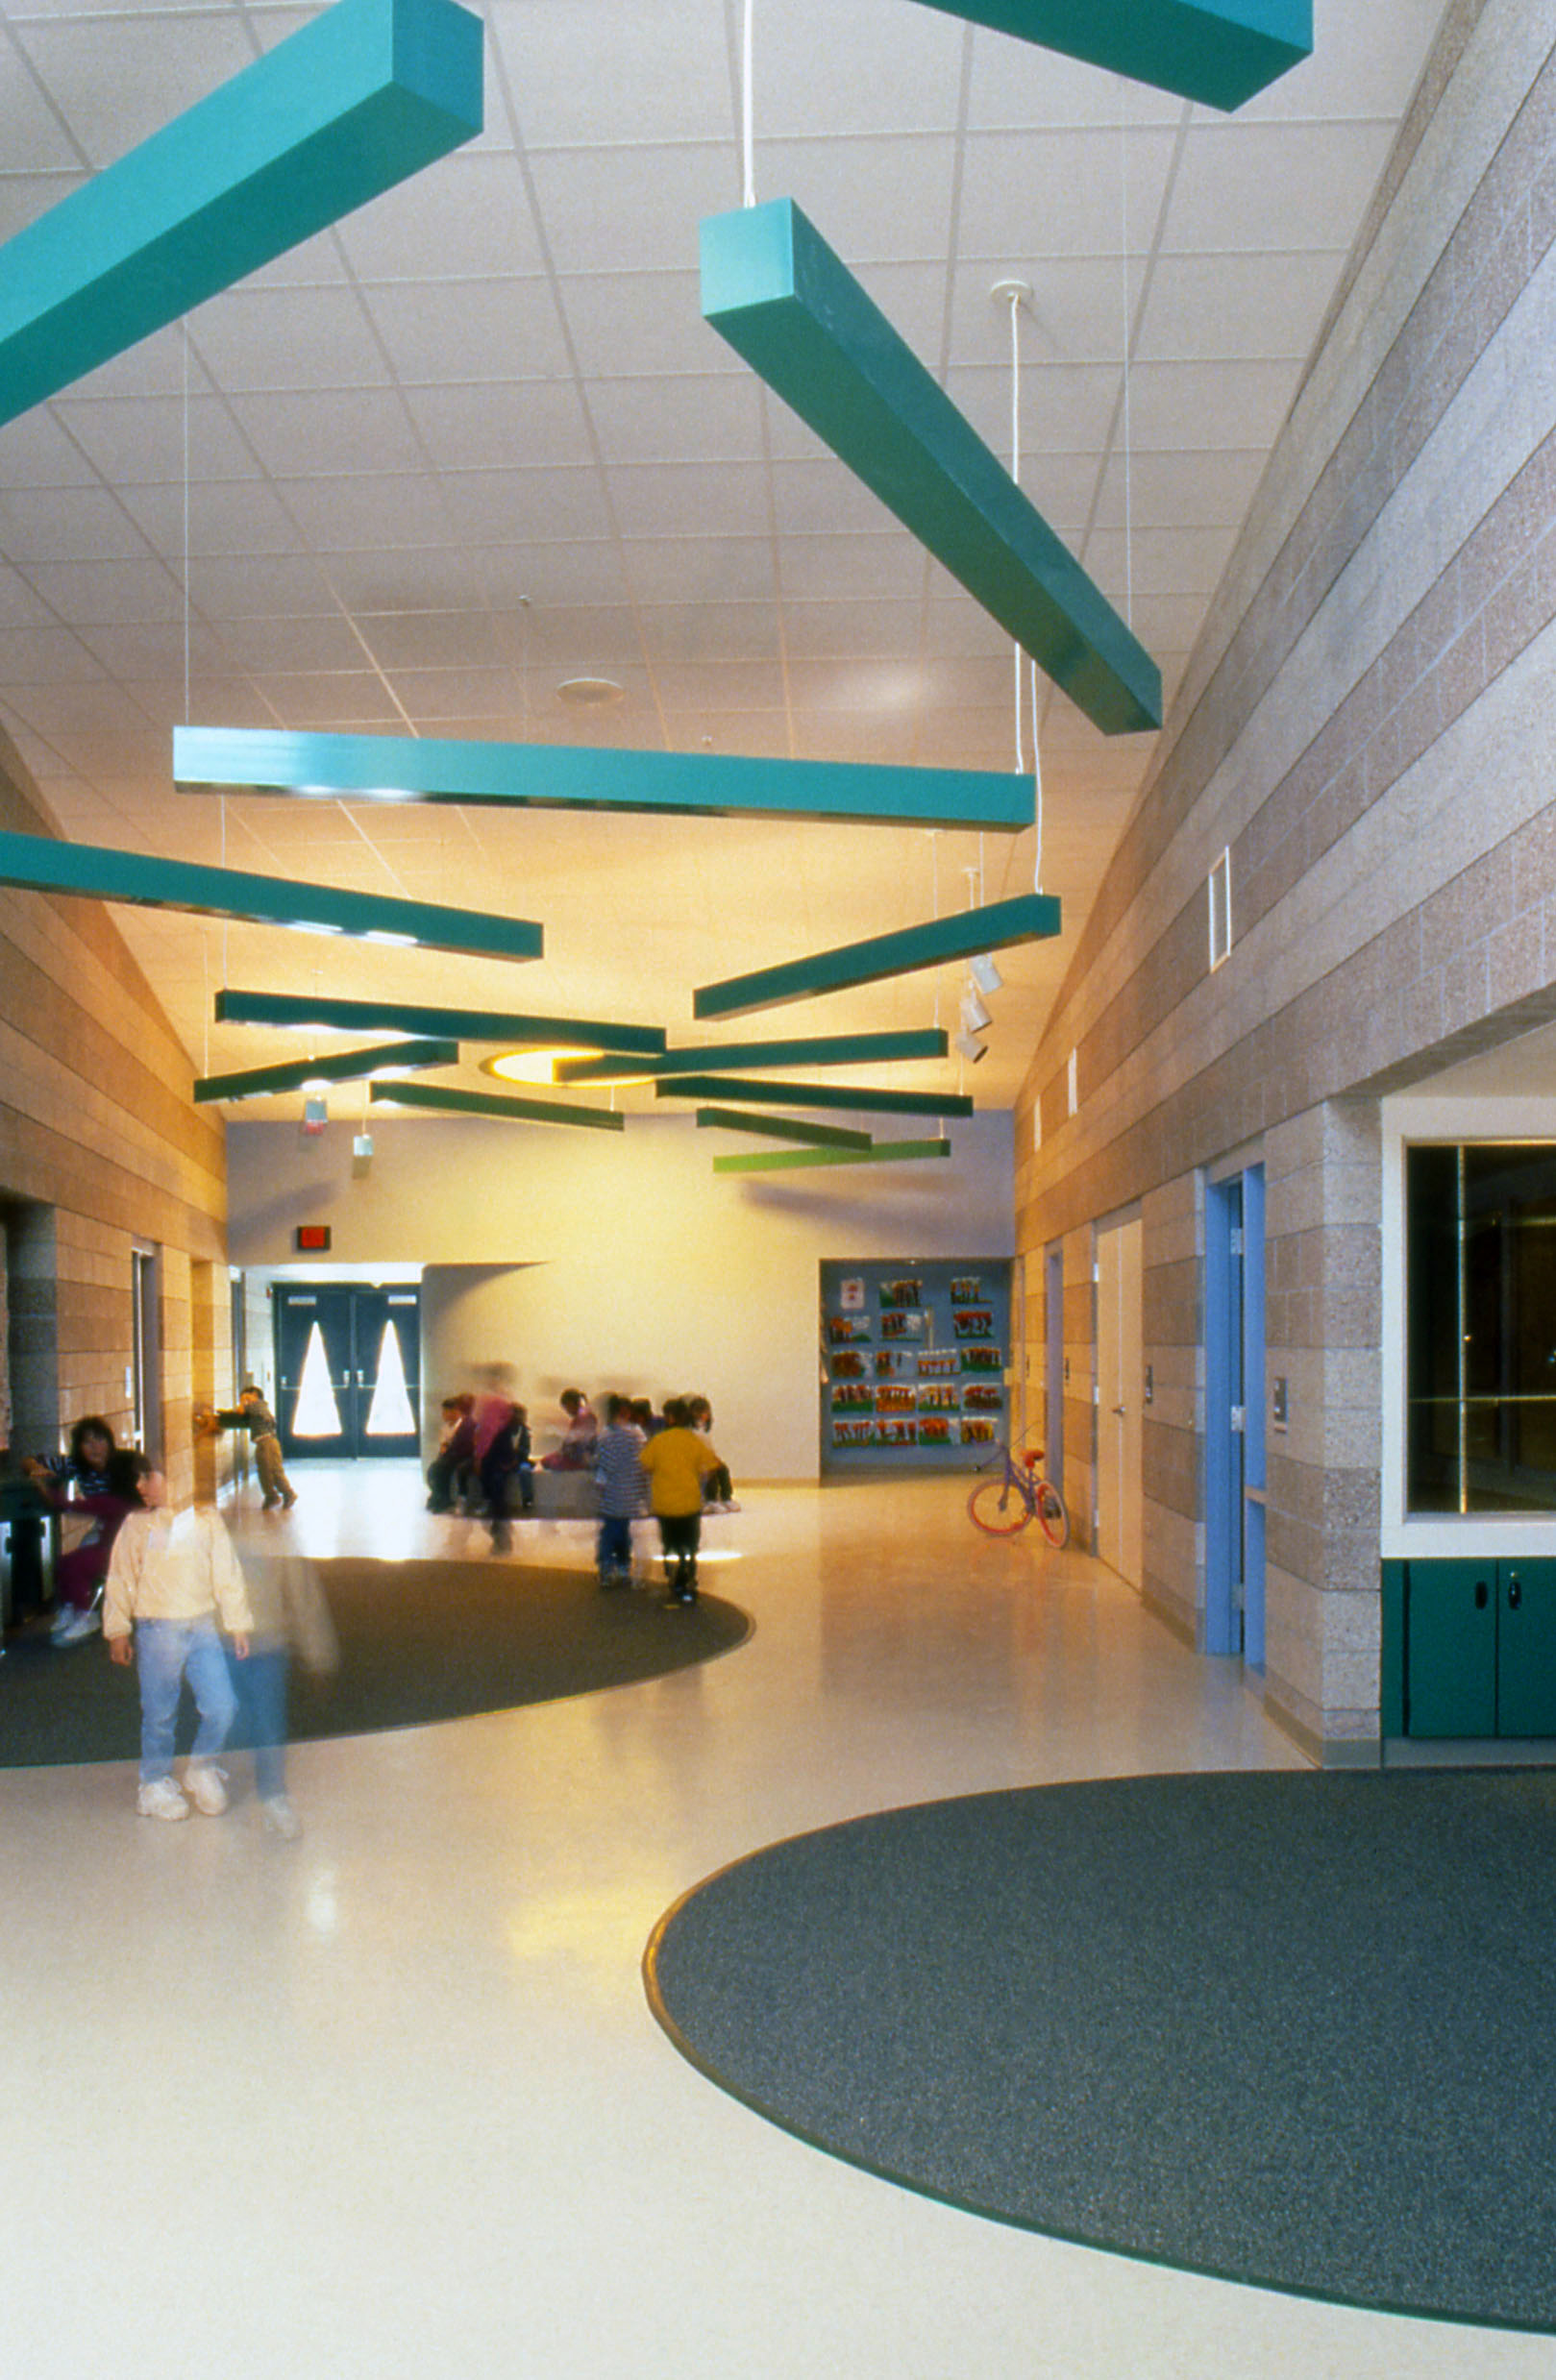 East San Jose Elementary School